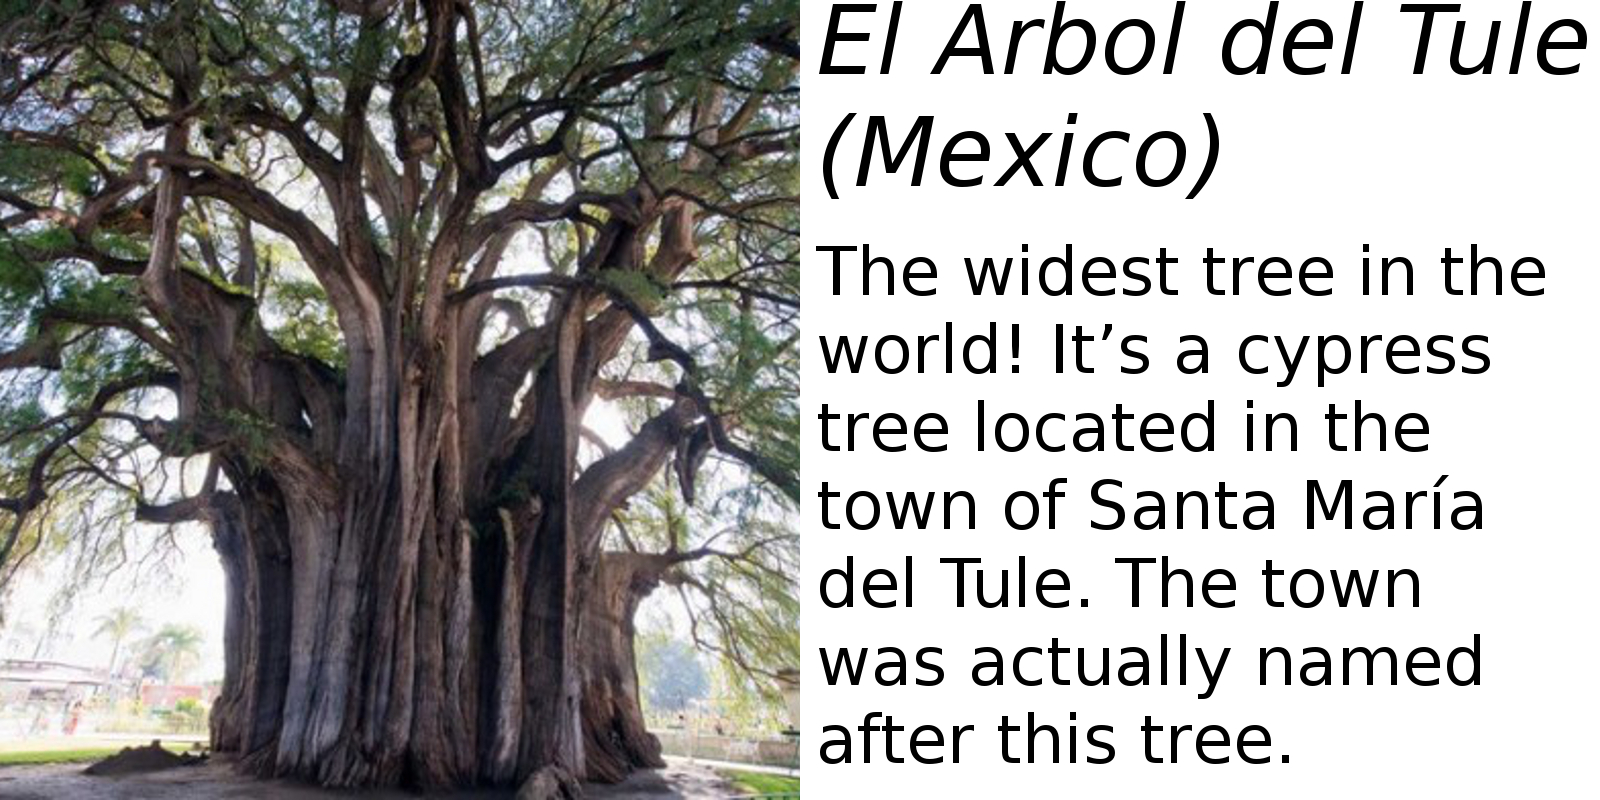 El Árbol del Tule (description) #2